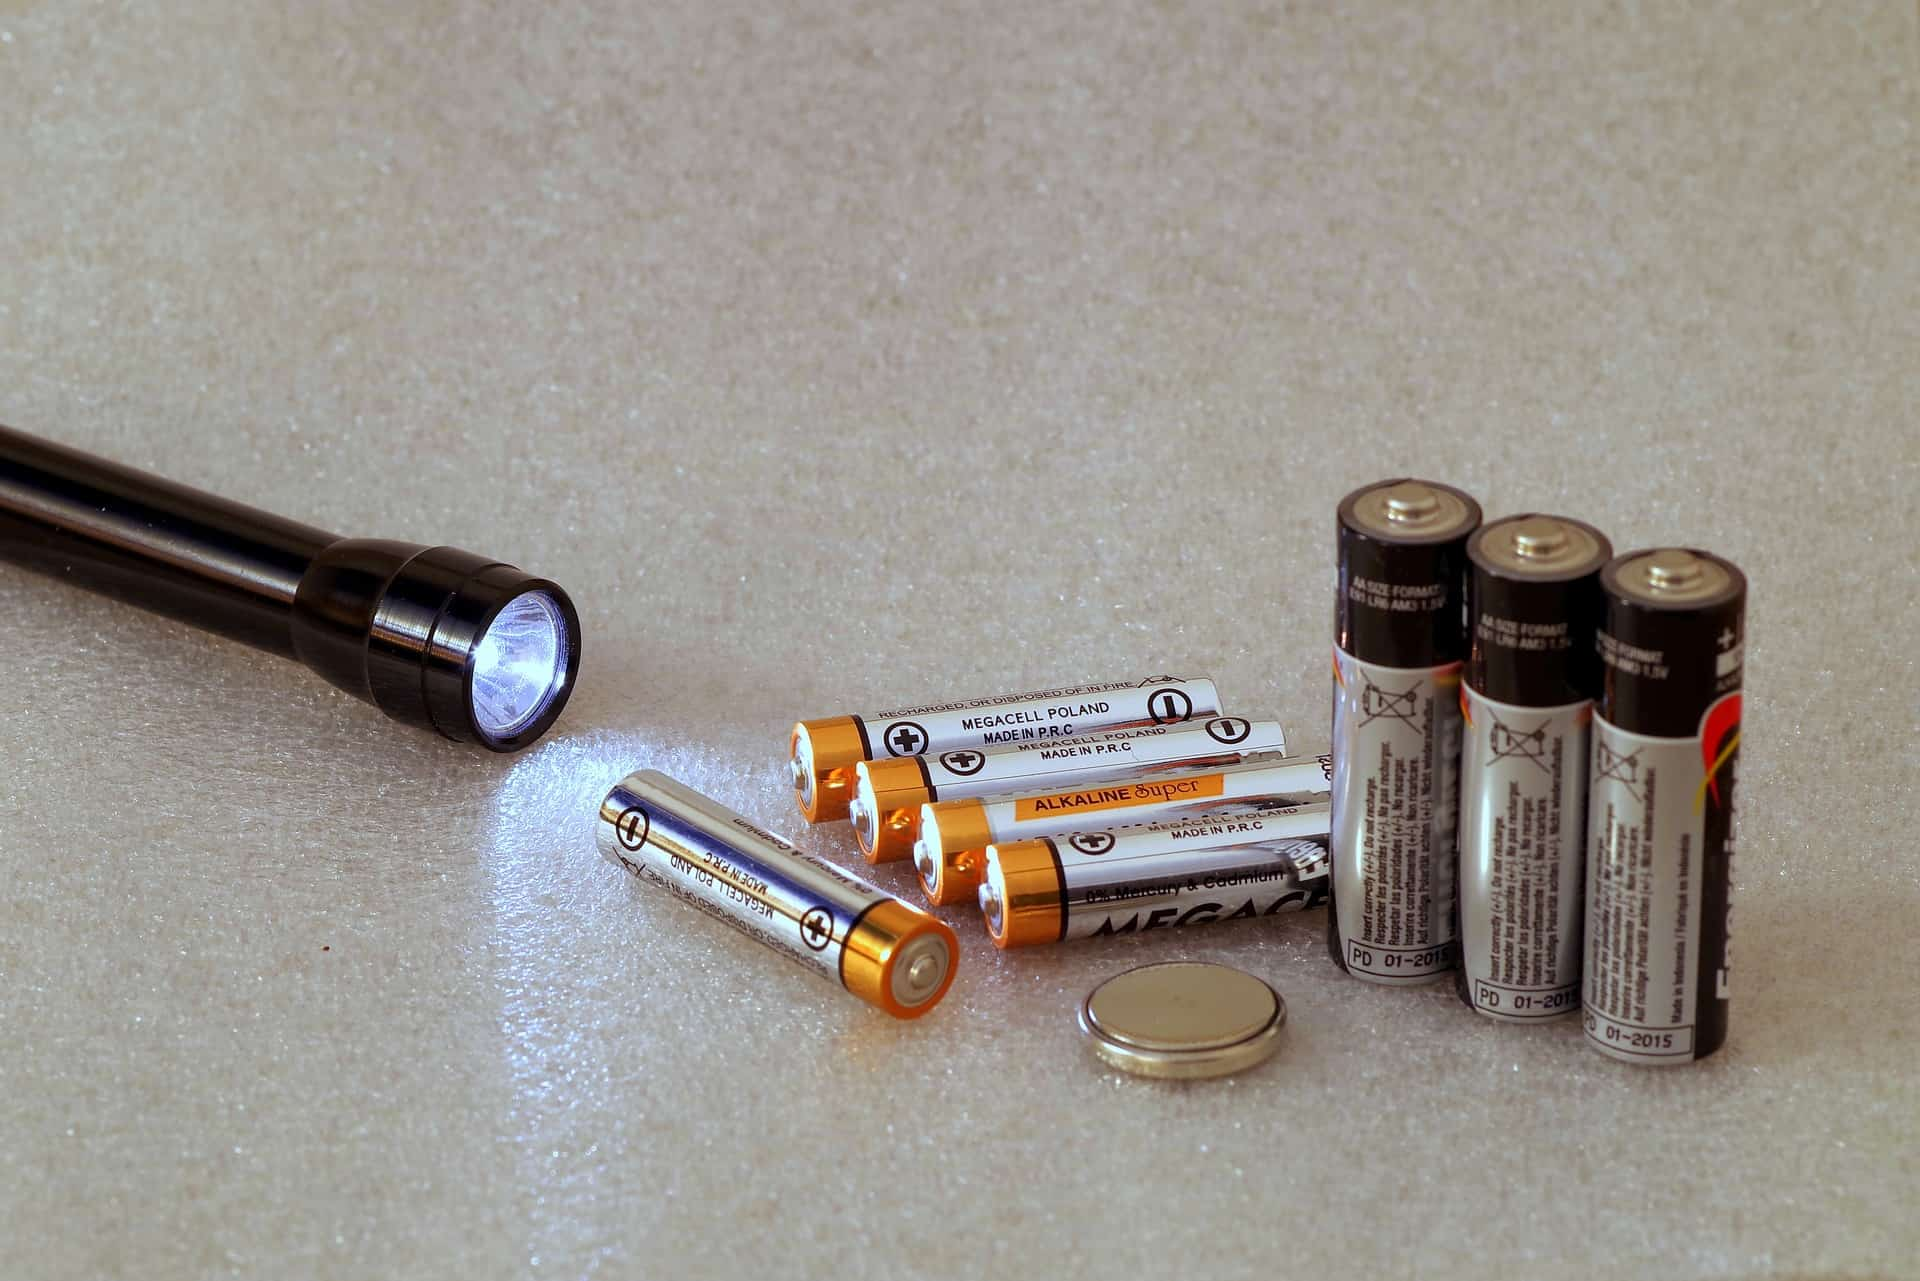 Family Survival Kit - Includes multiple Flashlights and replacement batteries